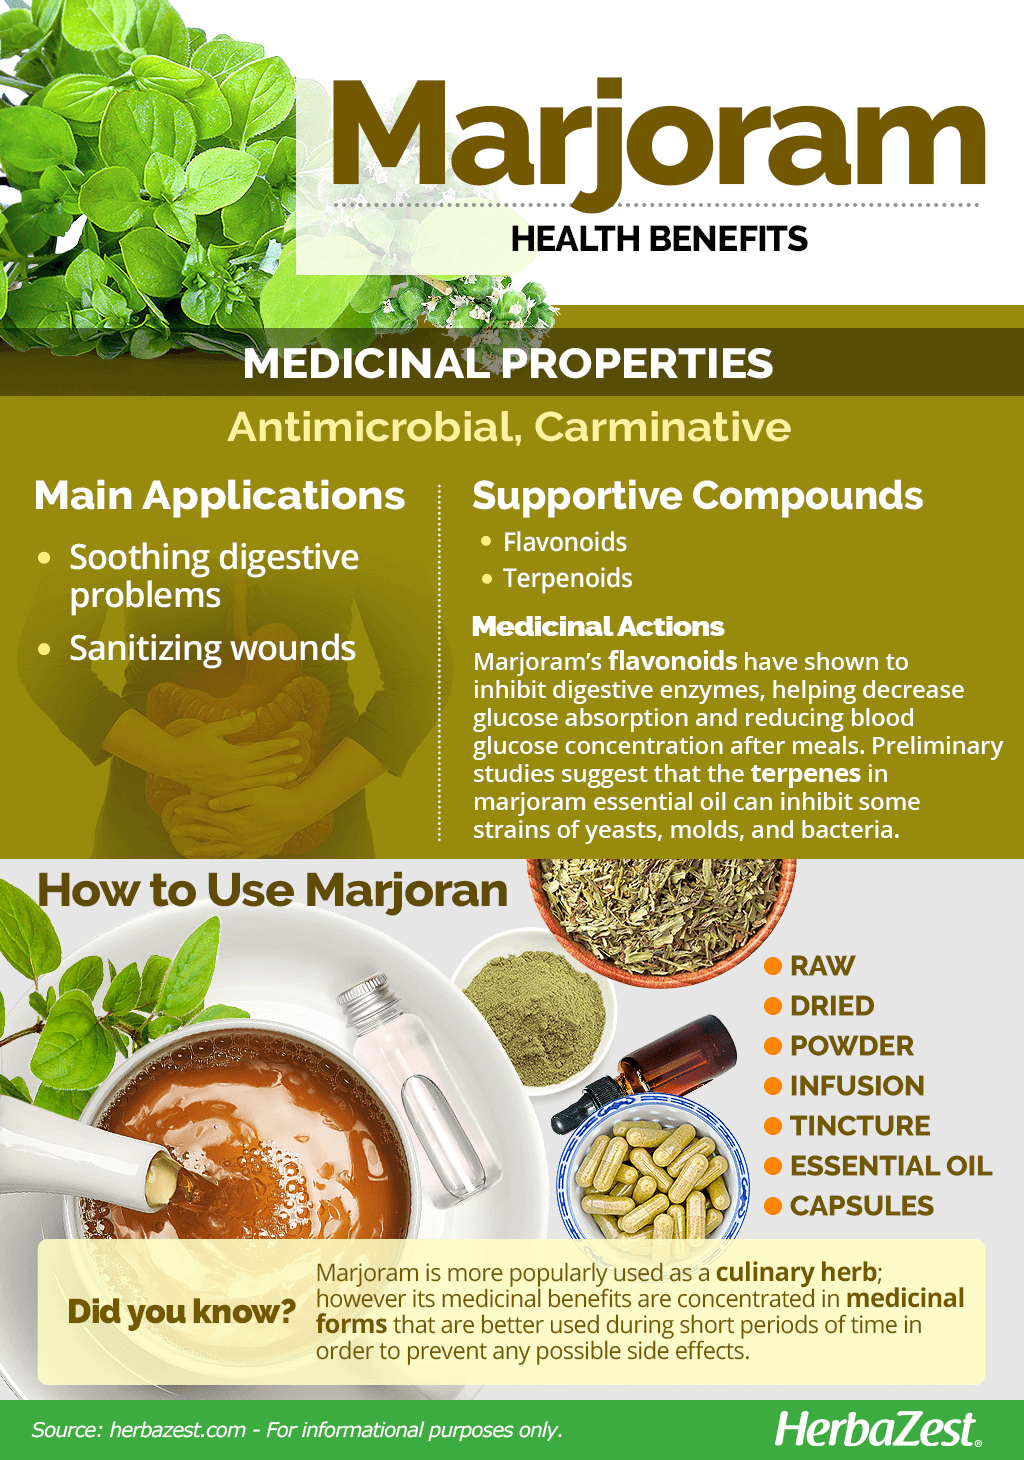 All About Marjoram